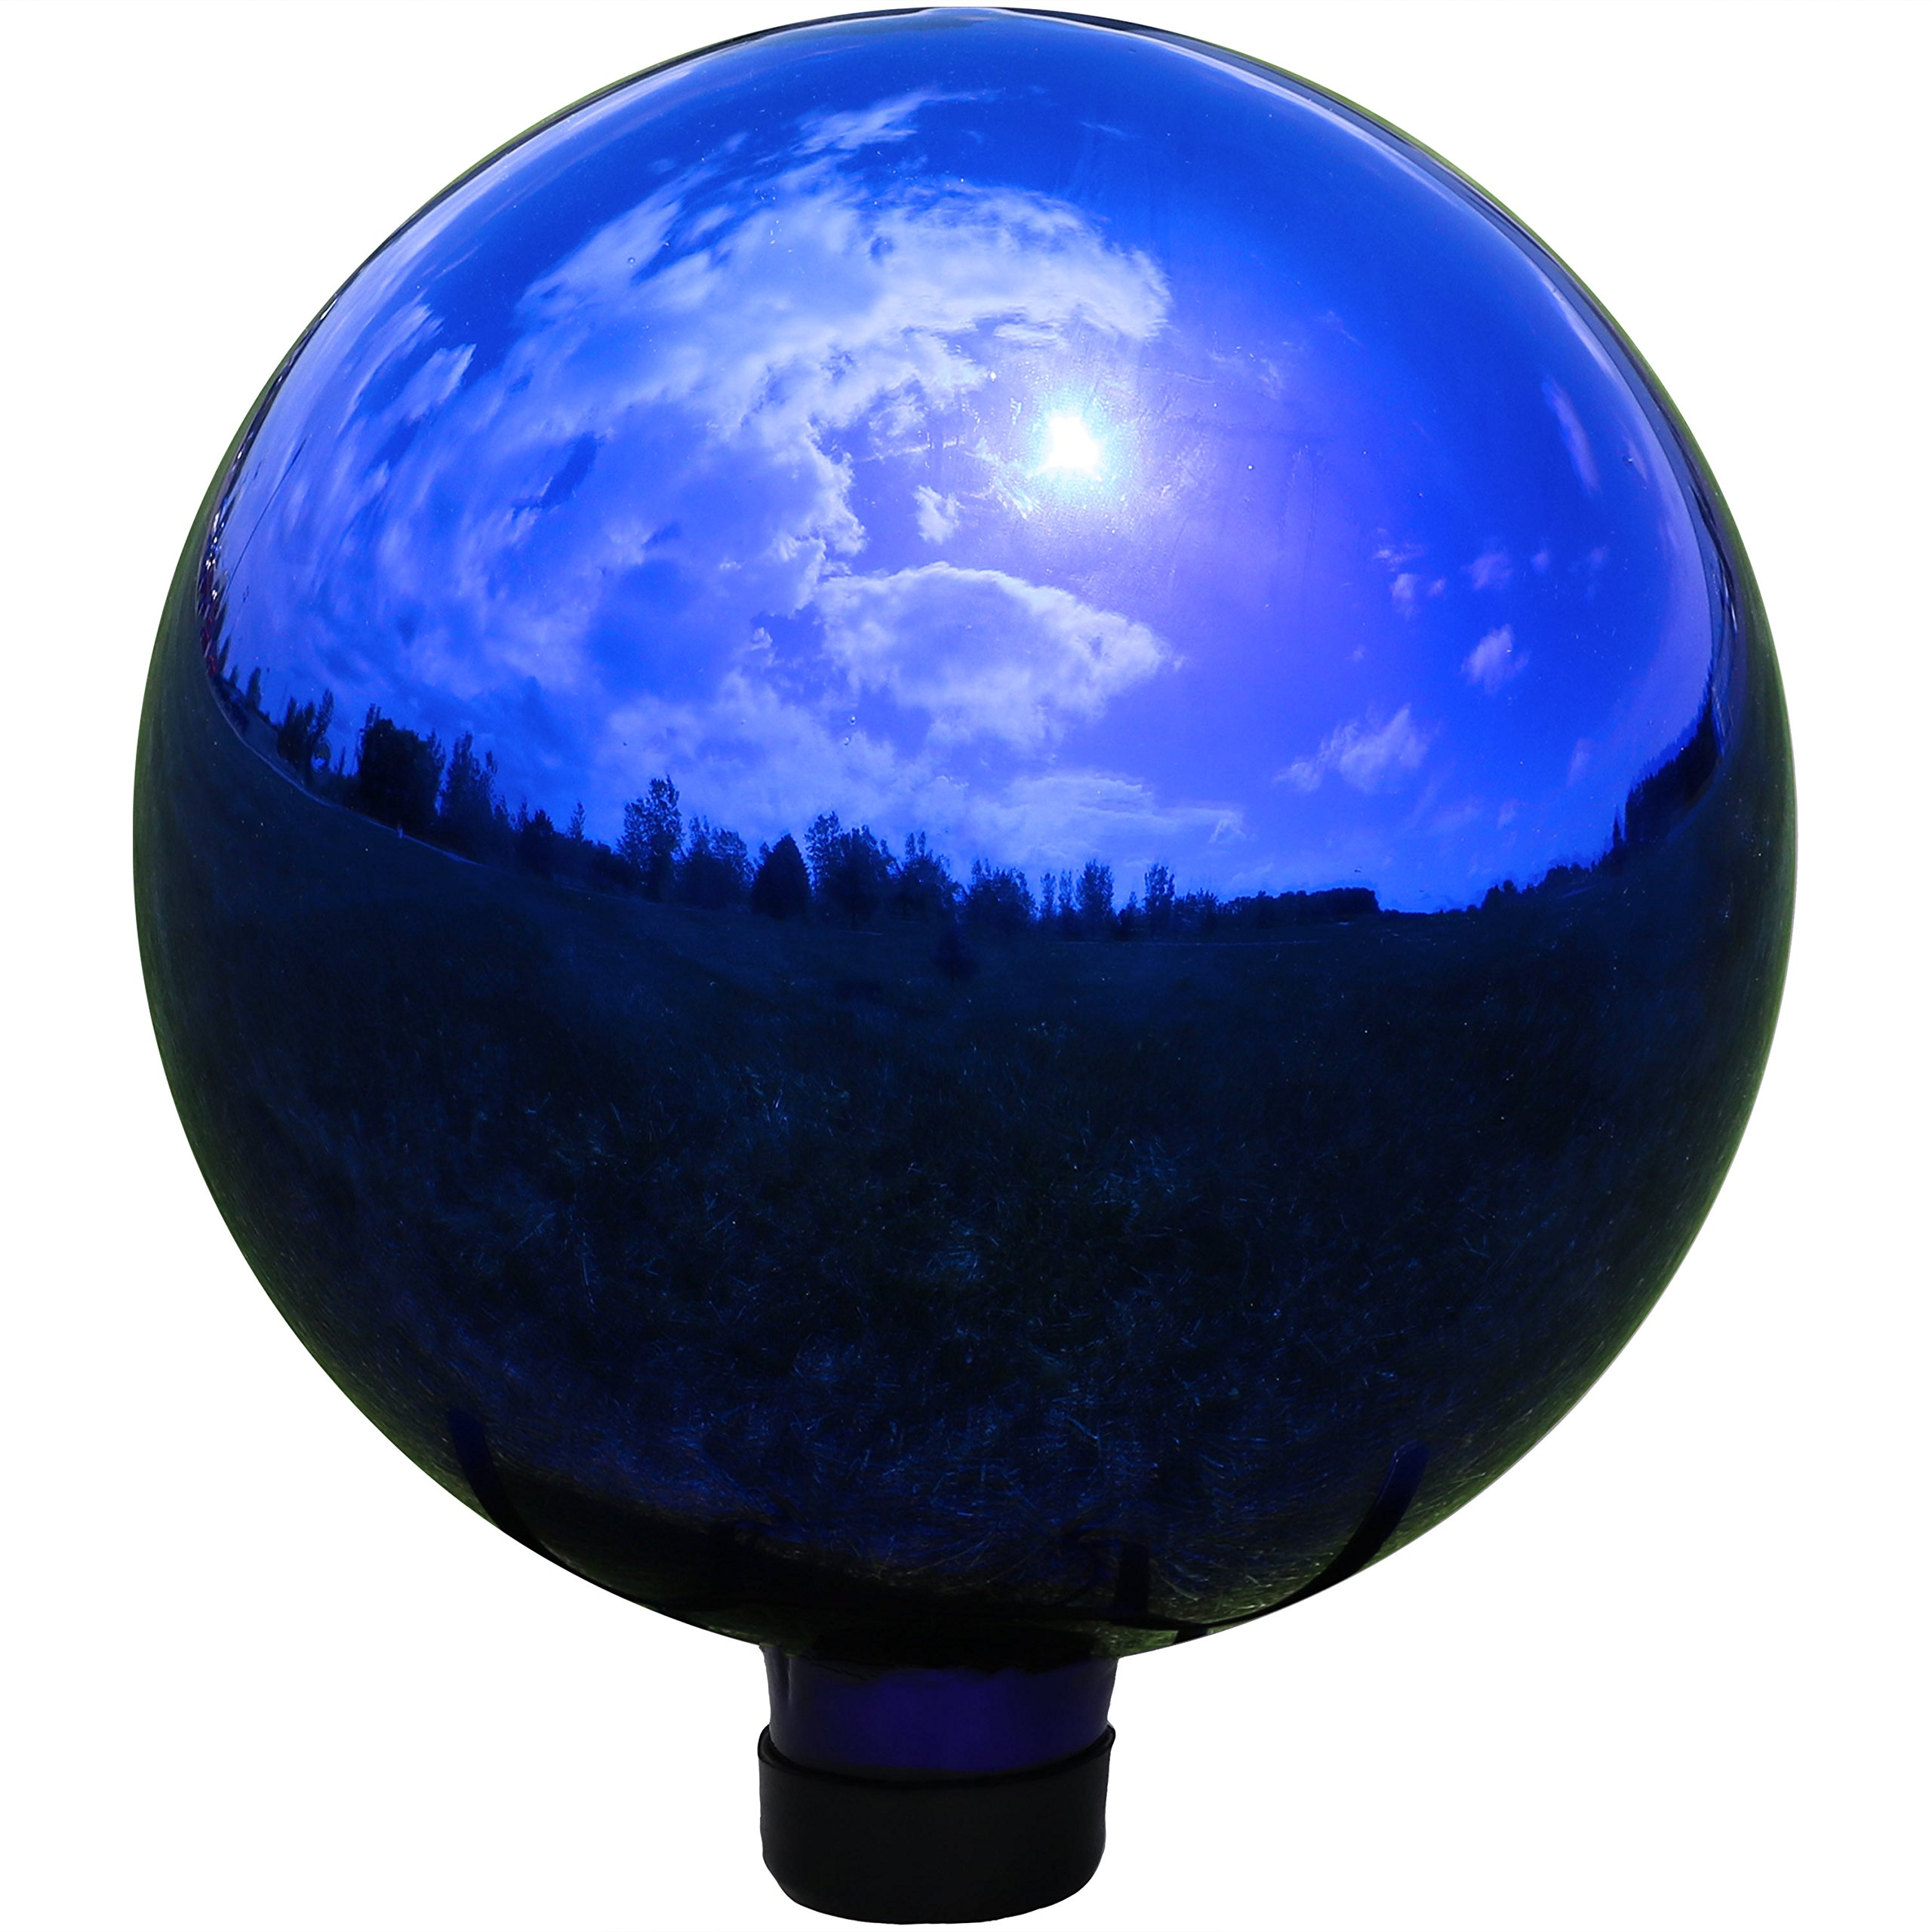 Sunnydaze Garden Gazing Globe Ball, Outdoor Lawn and Yard Glass Ornament, Reflective Blue Mirrored Surface, 10-Inch